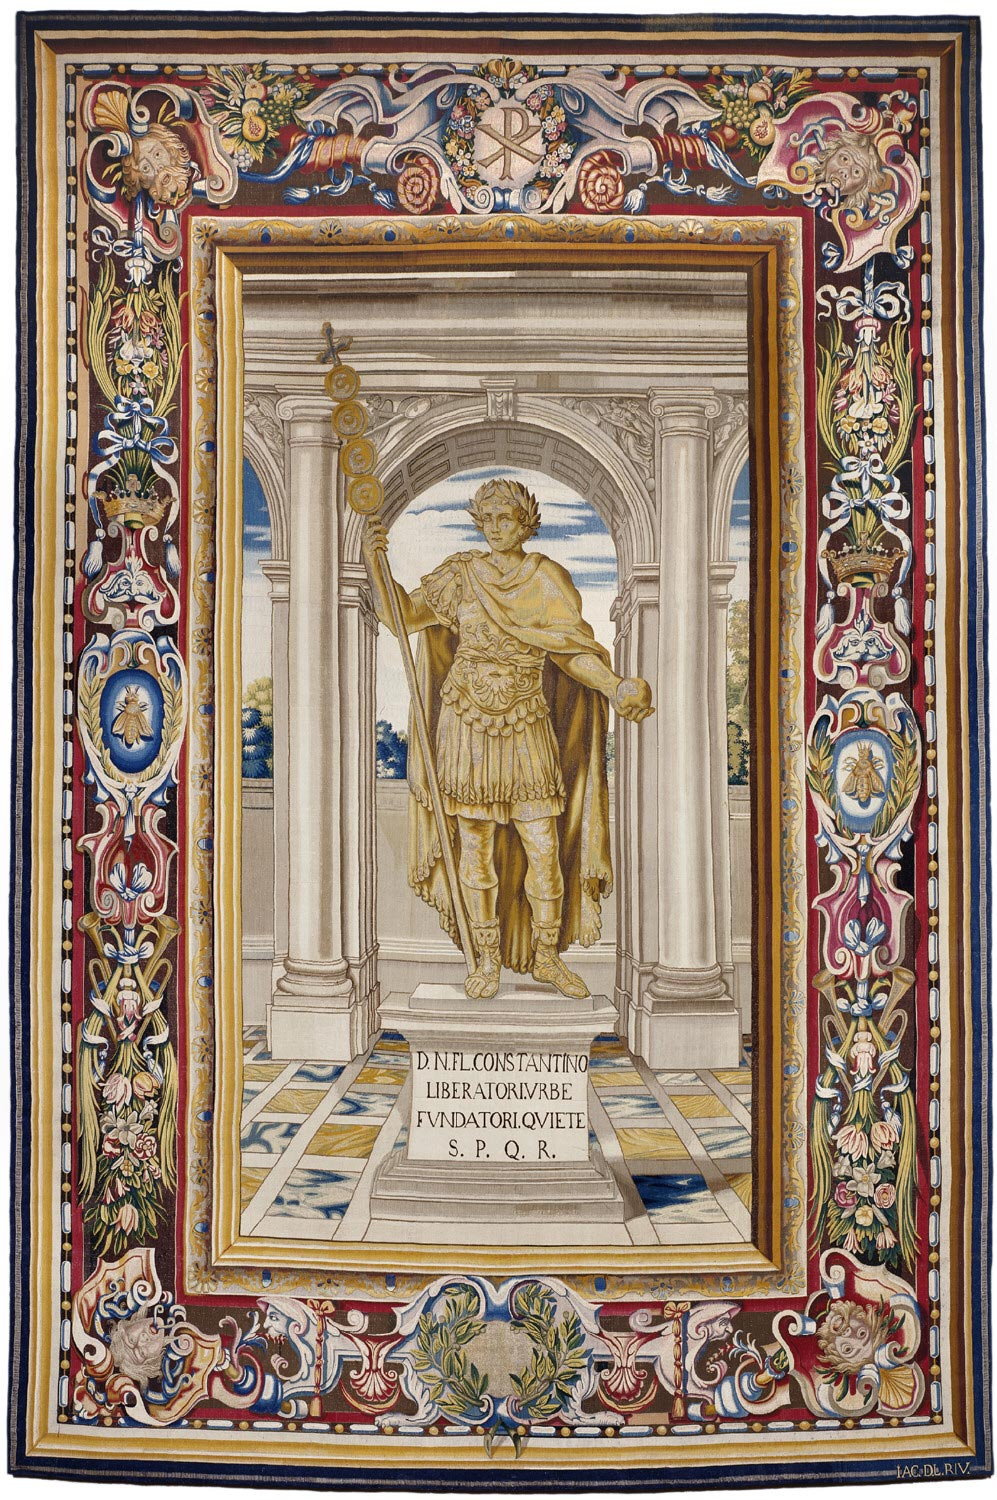 Tapestry showing the Statue of Constantine